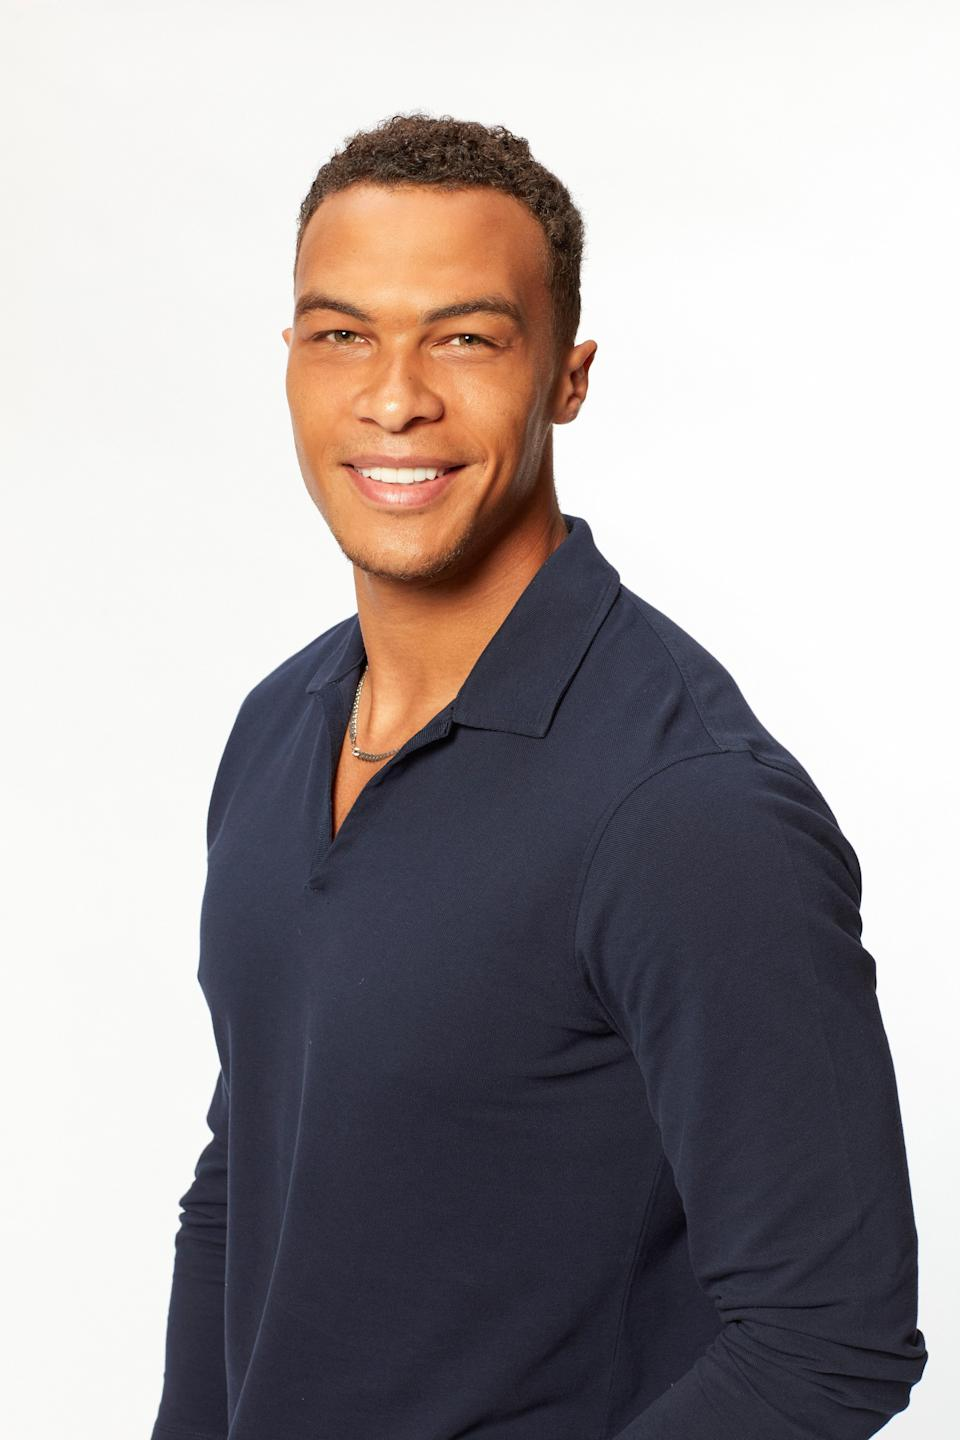 """Oh, hello, Dale. <a href=""""https://www.glamour.com/story/dale-moss-everything-you-need-to-know-about-the-bachelorette-contestant?mbid=synd_yahoo_rss"""" rel=""""nofollow noopener"""" target=""""_blank"""" data-ylk=""""slk:I know about you"""" class=""""link rapid-noclick-resp"""">I know about you</a>. No need to dig too deep here—I trust Clare to make the right choice for herself."""